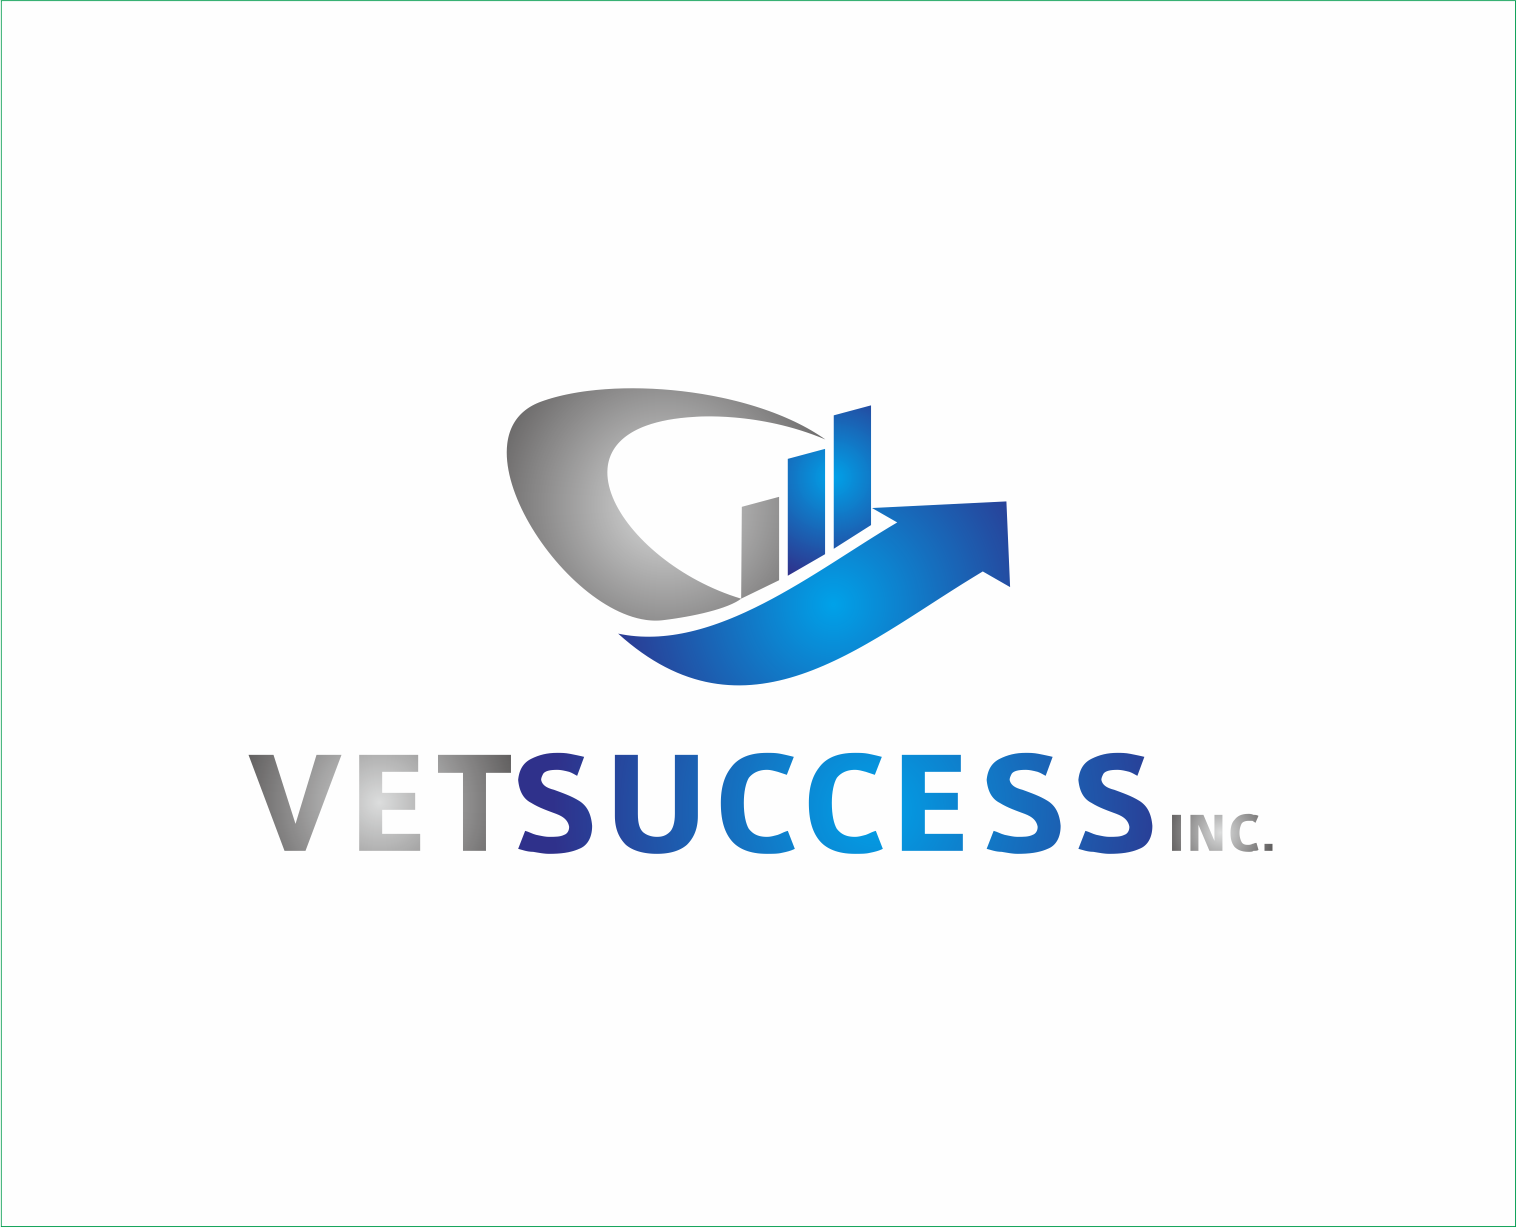 Logo Design by Armada Jamaluddin - Entry No. 138 in the Logo Design Contest Imaginative Logo Design for Vet Success Inc..